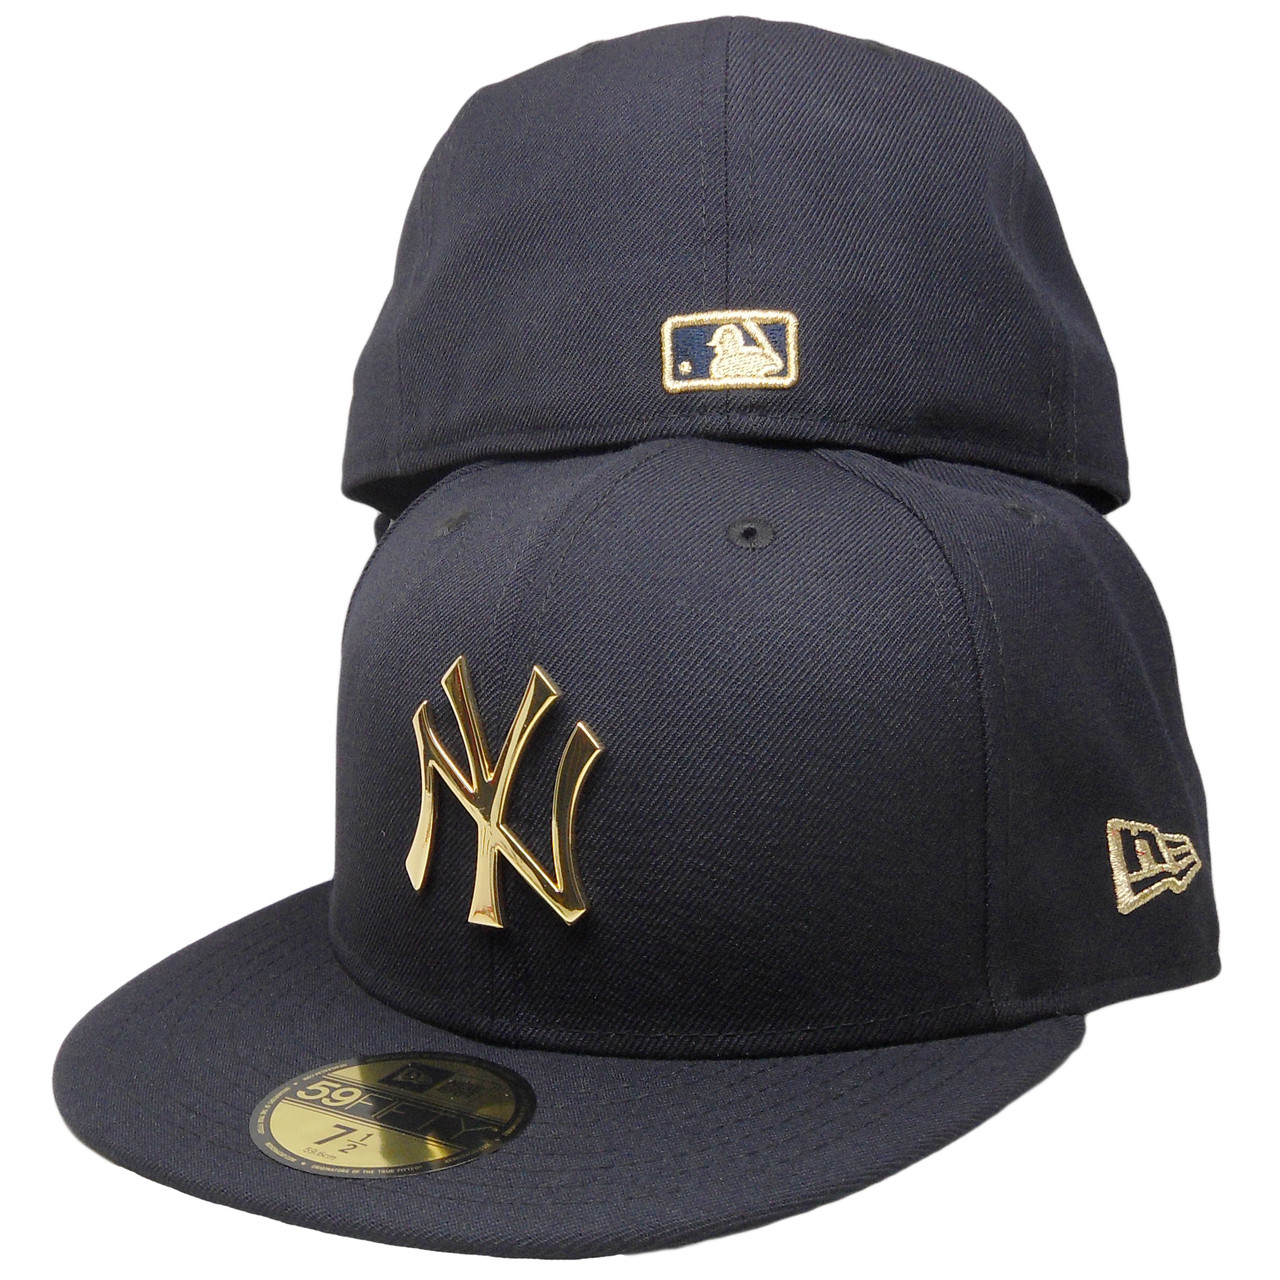 92047310c New York Yankees New Era Custom 59Fifty Fitted Hat - Navy, Gold ...